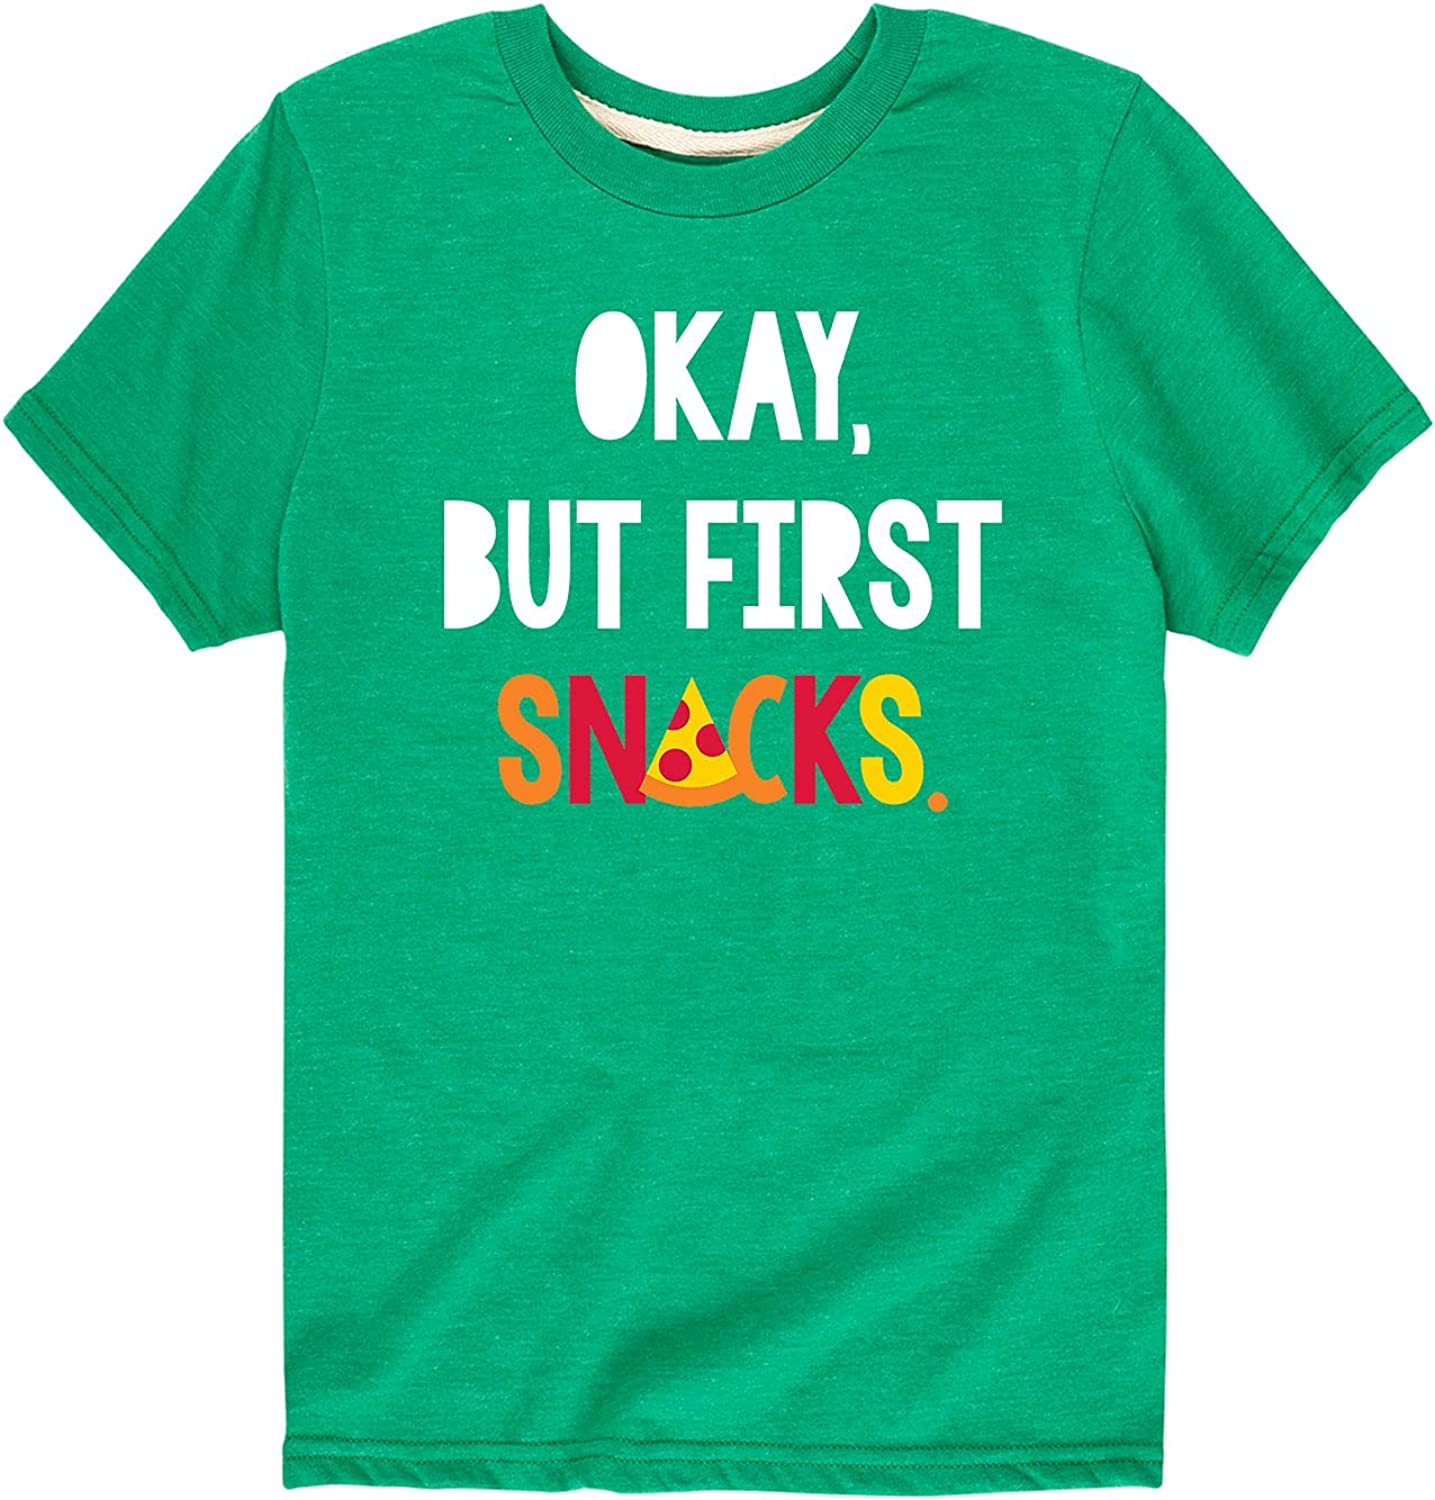 Instant Message Okay But First Snacks - Toddler and Youth Short Sleeve Graphic T-Shirt